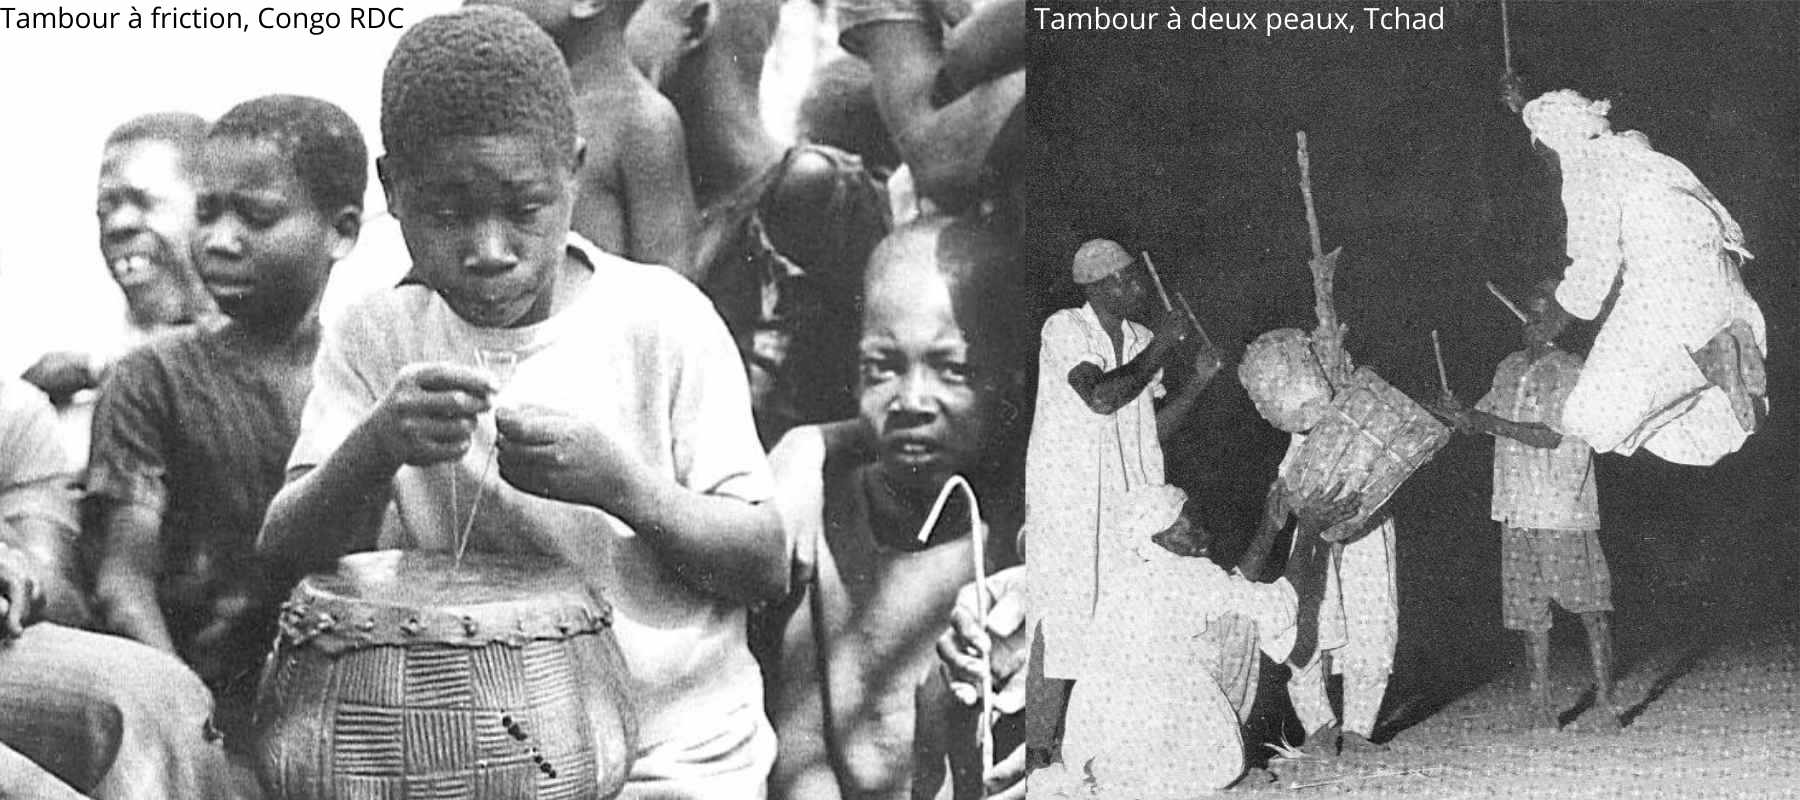 le tambour africain